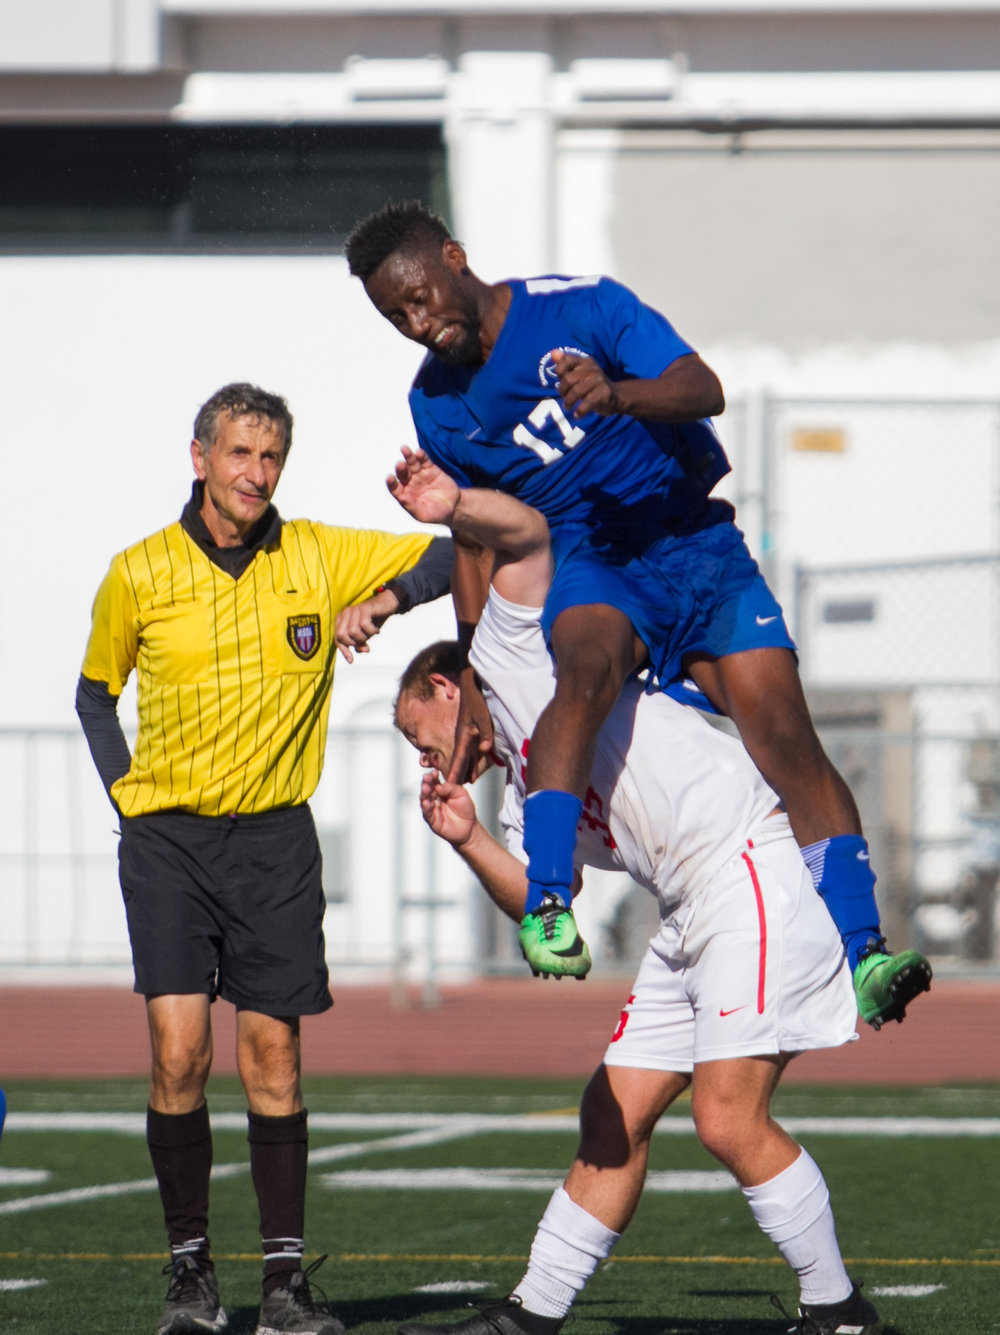 Santa Monica College Corsair Cyrille Njomo (17)(R) fights for possession of the ball  against Santa Barbara City College Vaquero Nathan Nundley (35)(L) on Tuesday, October 24, 2017, on the Corsair Field at Santa Monica College in Santa Monica, California. The Corsairs tie 0-0. (Josue Martinez)